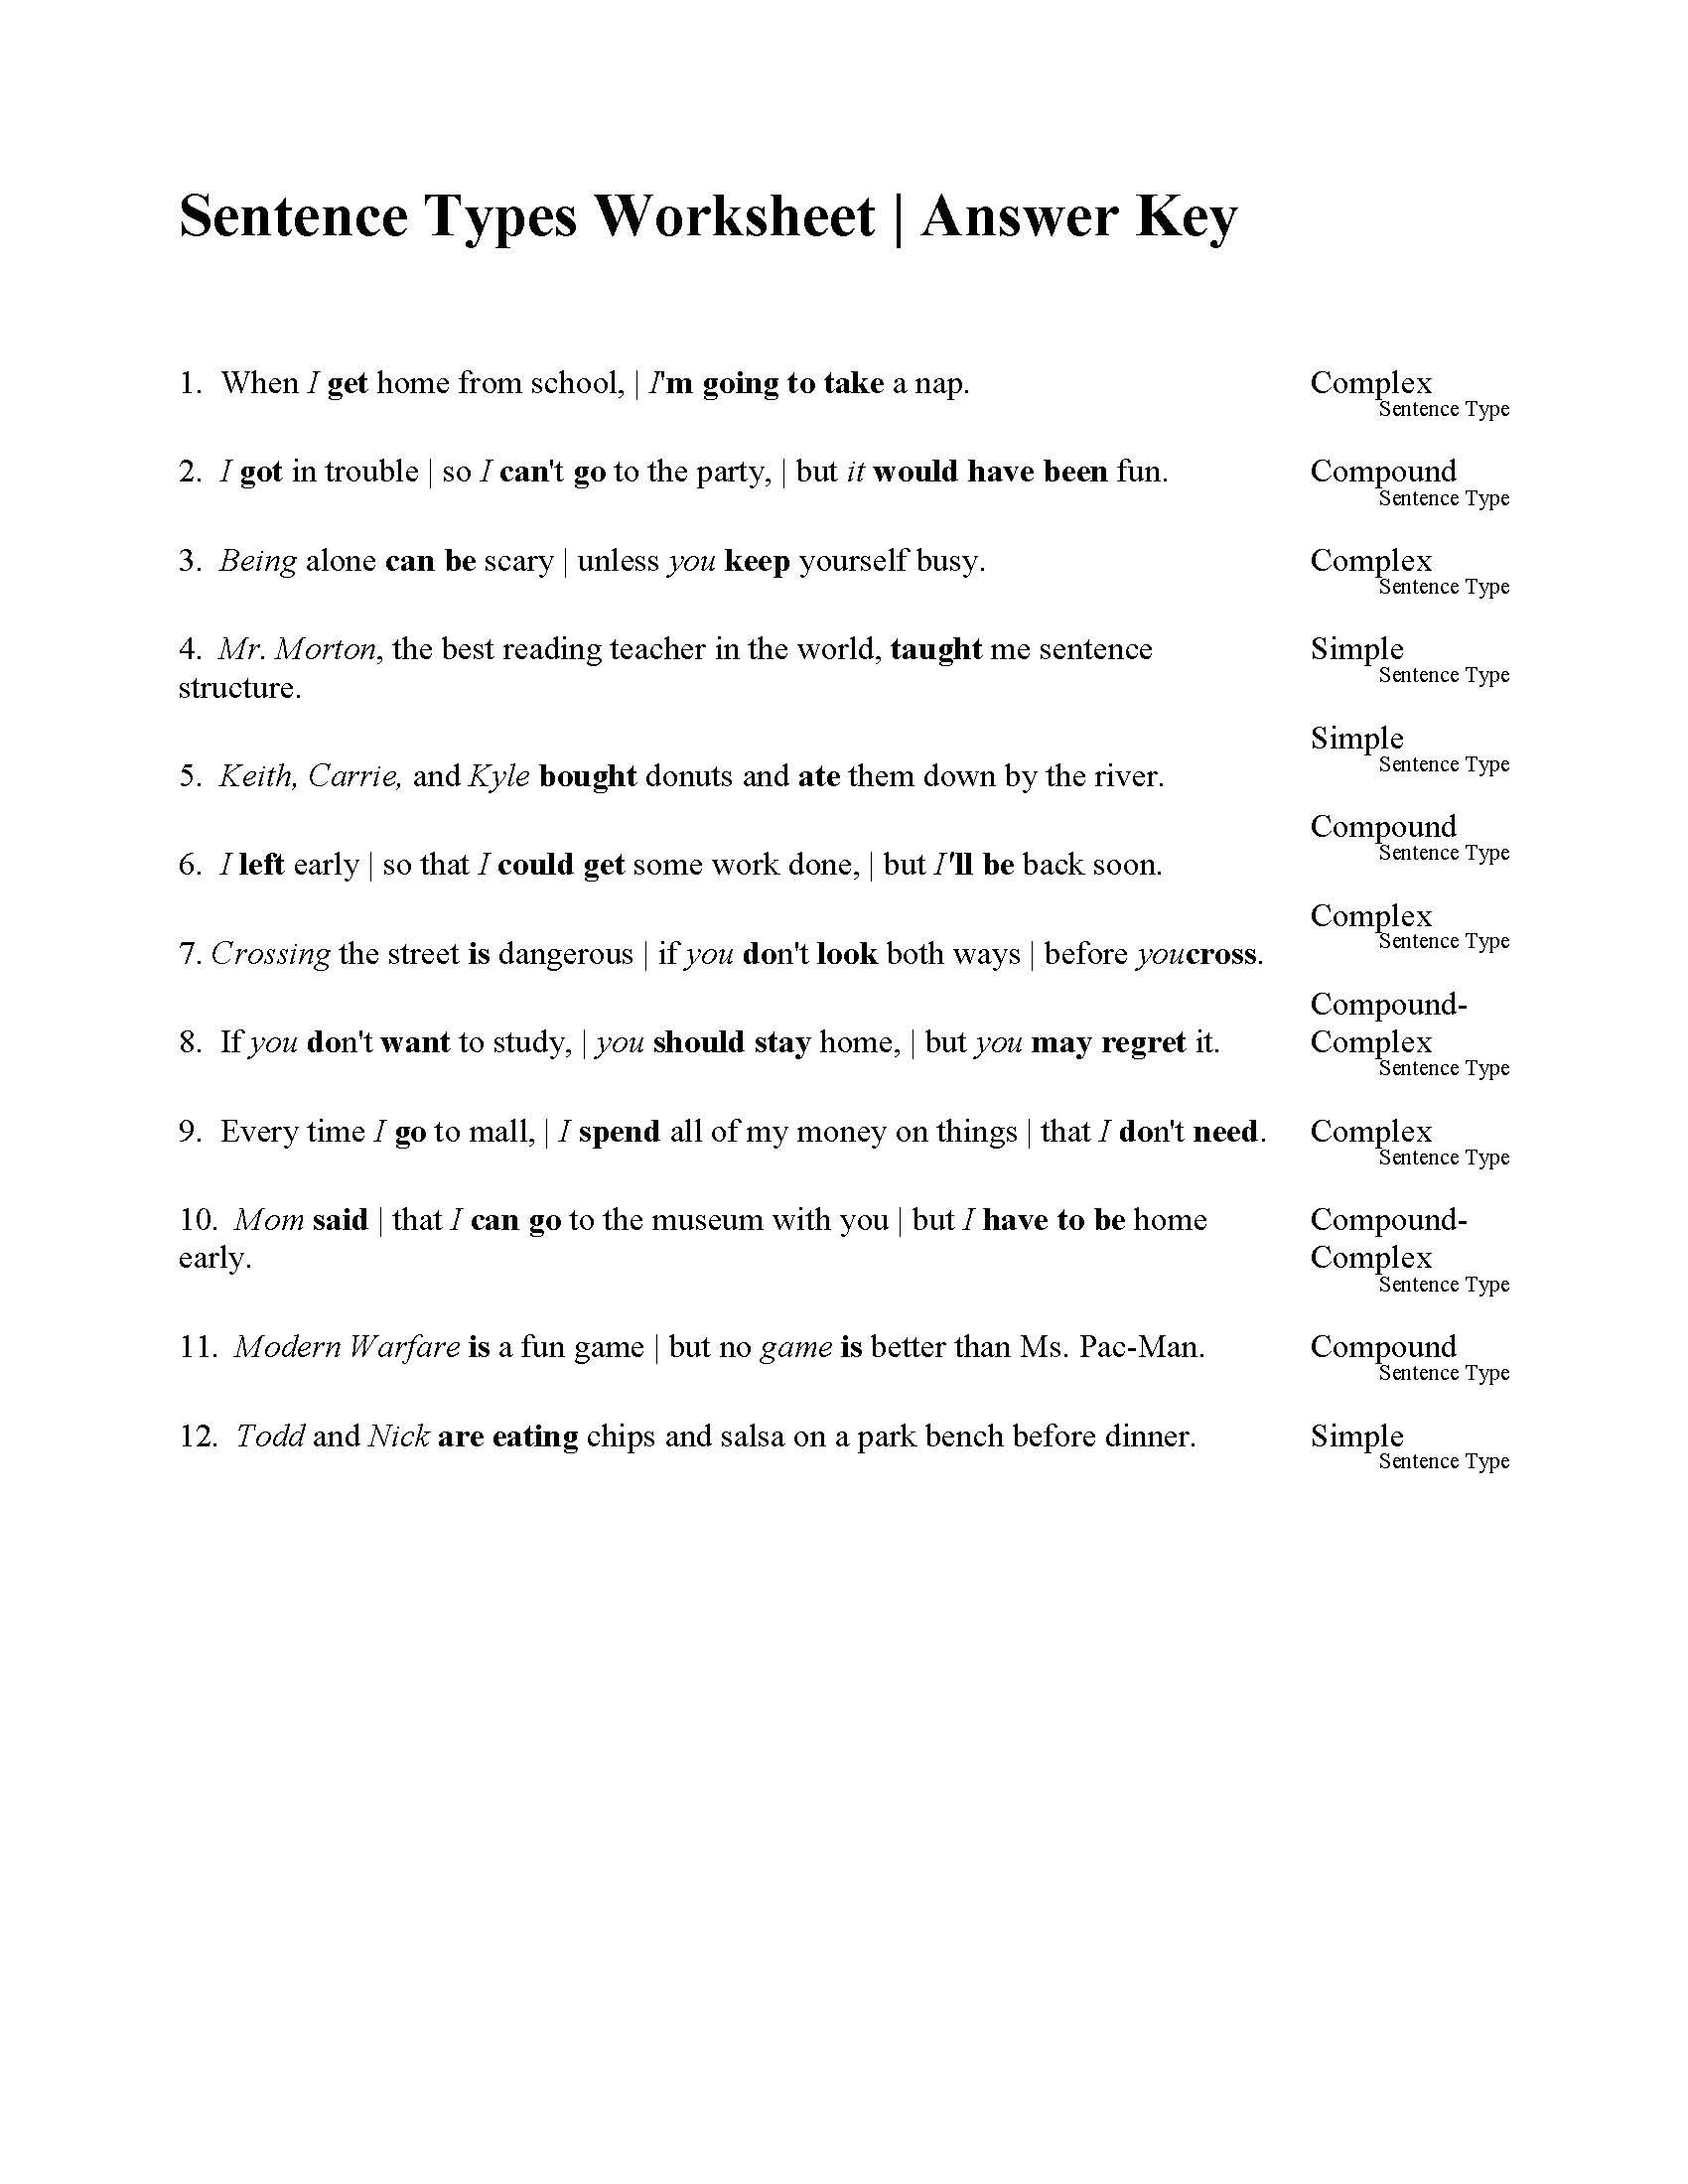 Sentences Types Worksheet  Answers As Well As Simple Compound And Complex Sentences Worksheet Pdf With Answers